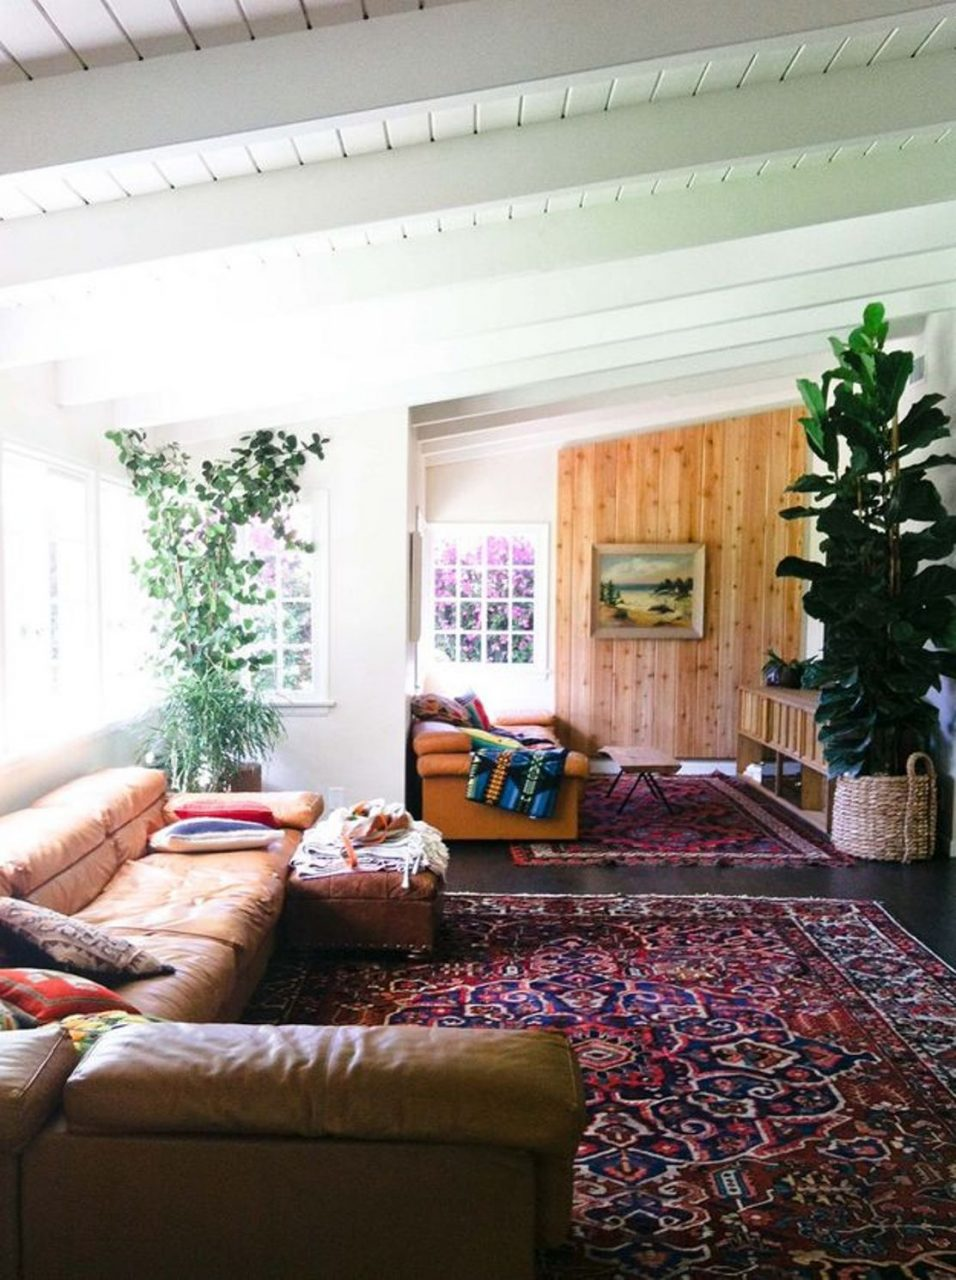 Bohemian Living Room Design With Bohemian Carpet And Indoor Plants